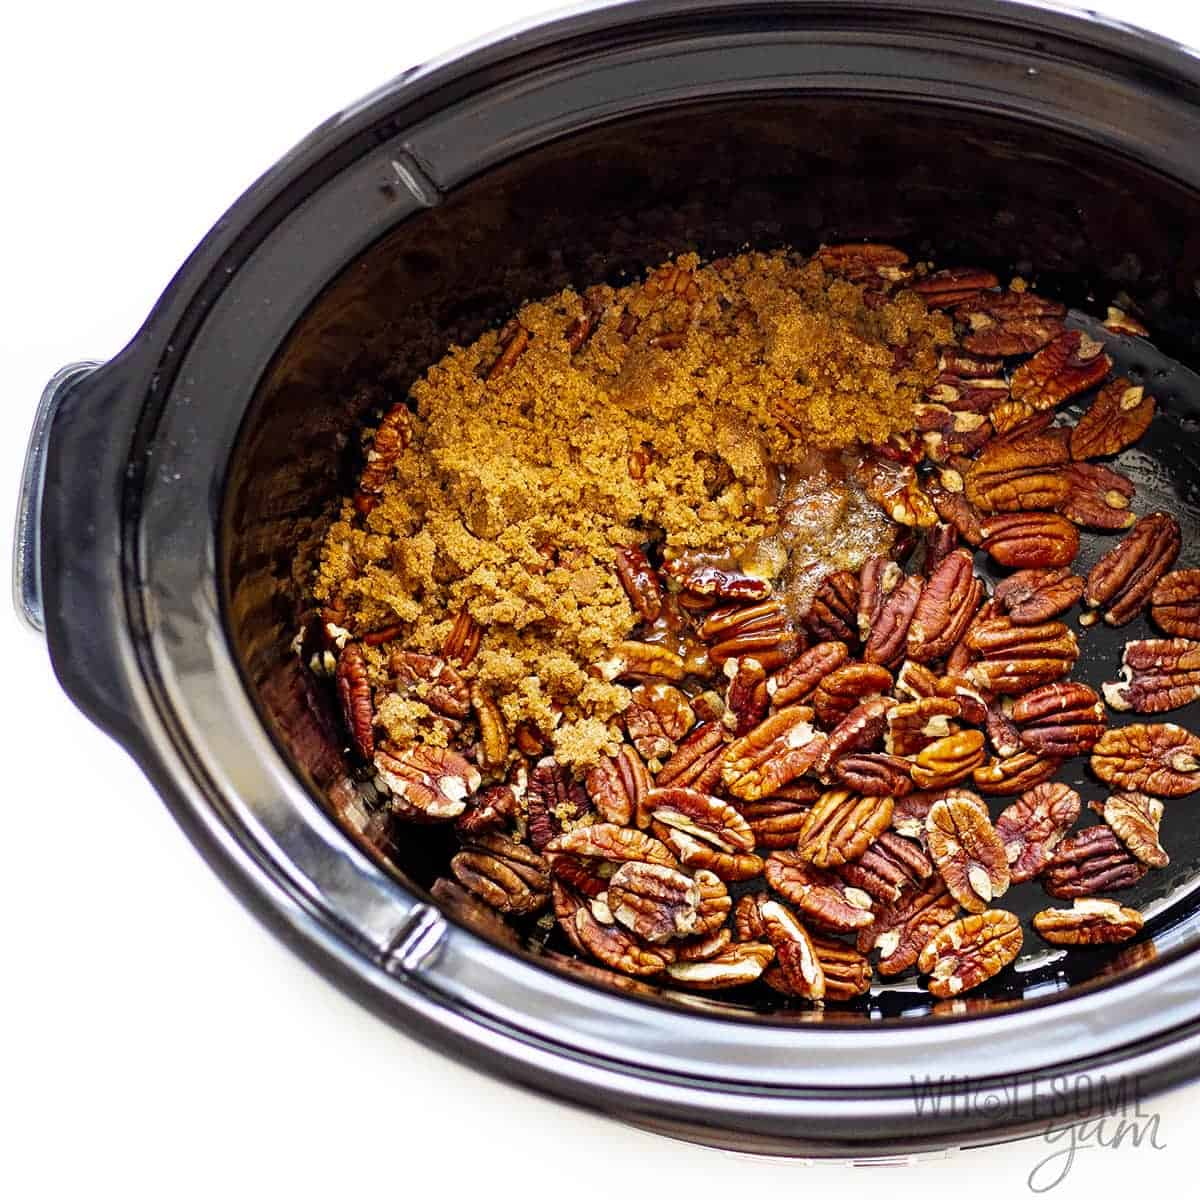 Keto candied nuts in a slow cooker